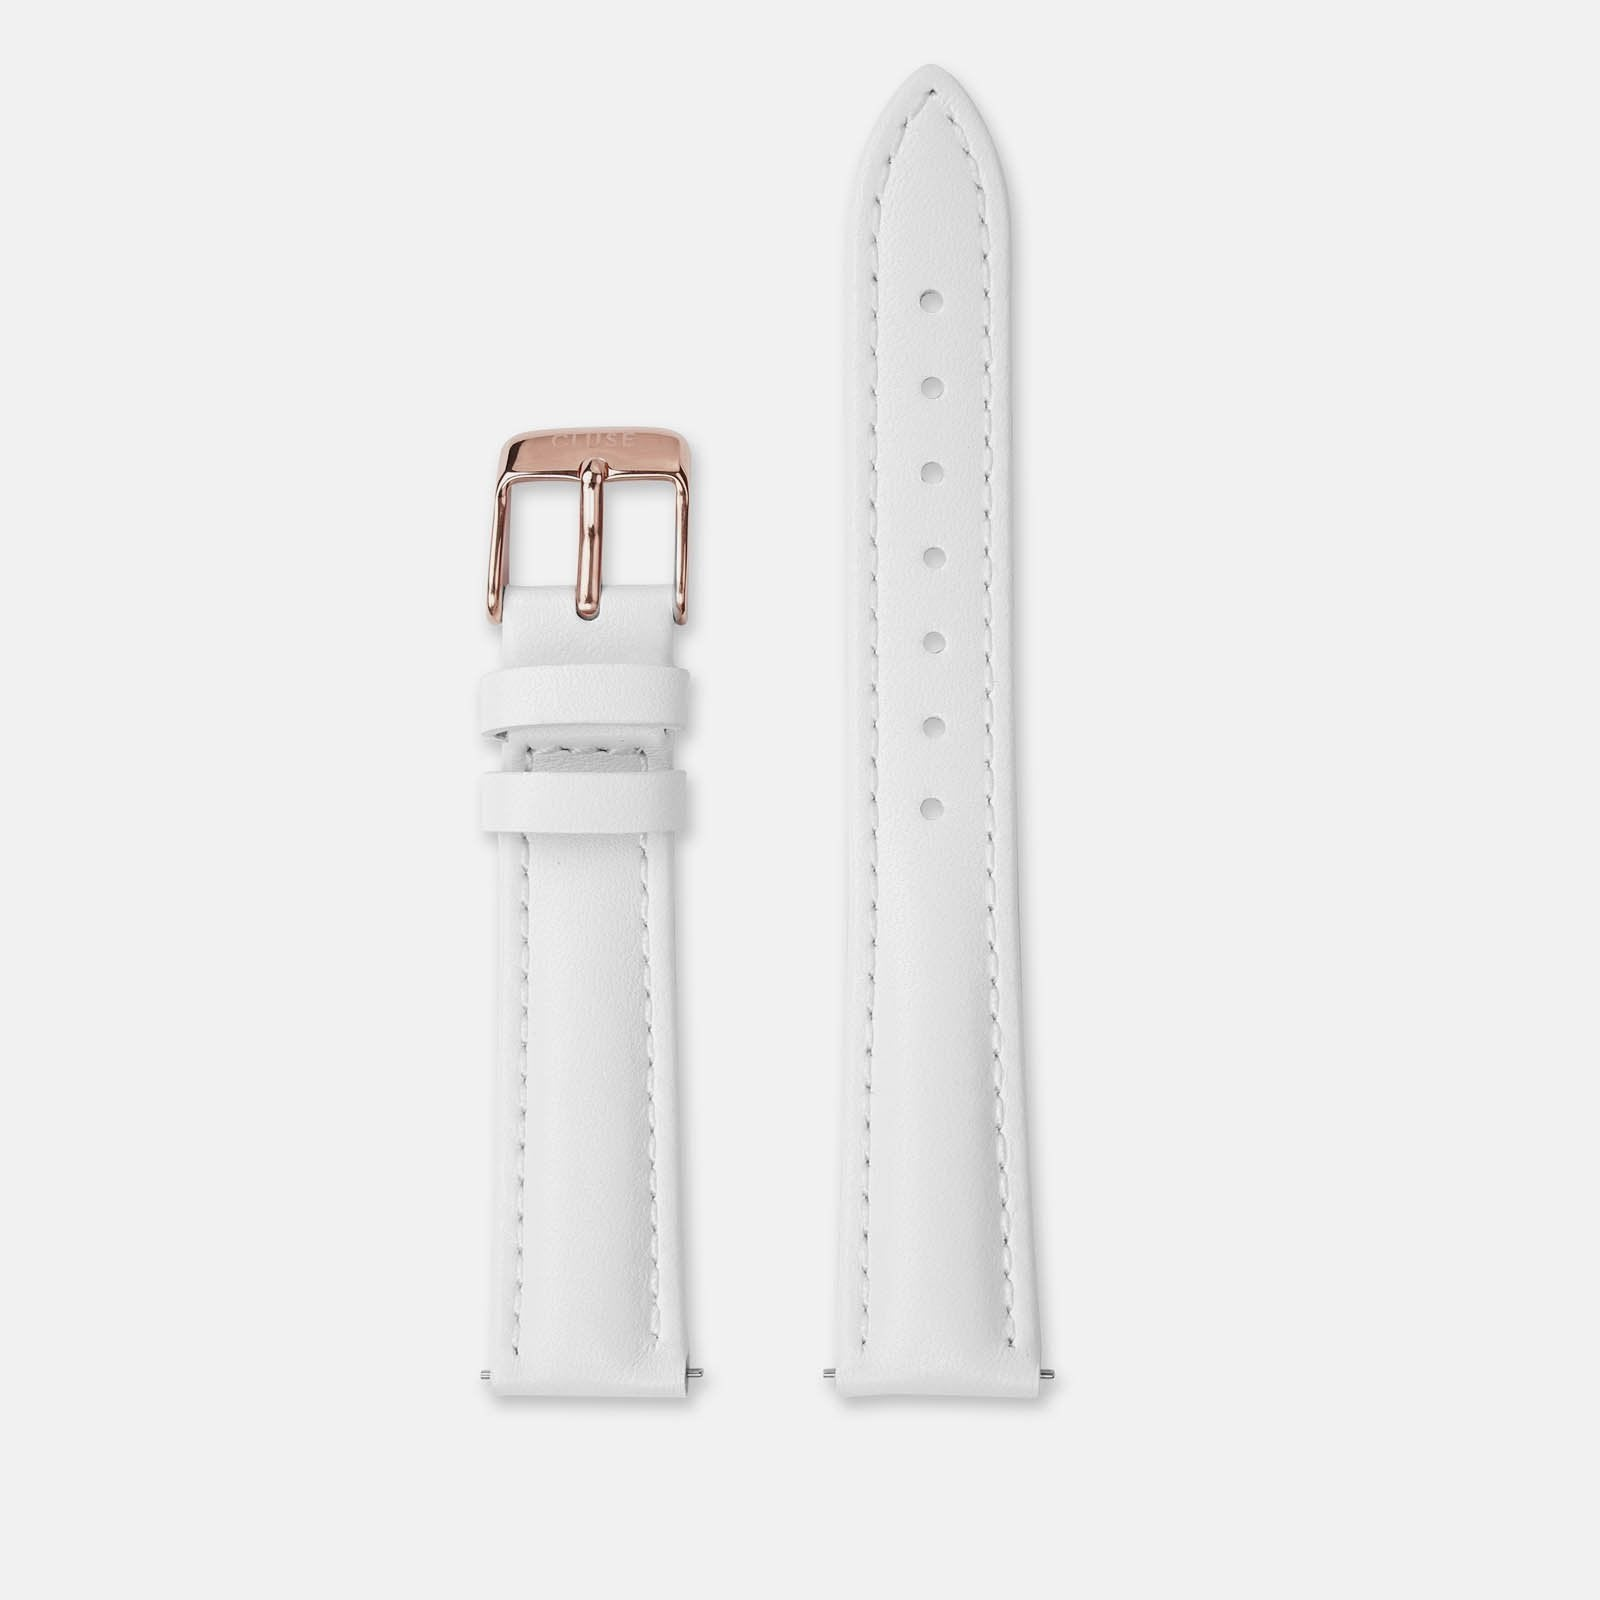 CLUSE 16 mm Strap White/Rose Gold CLS377 - Correa de reloj